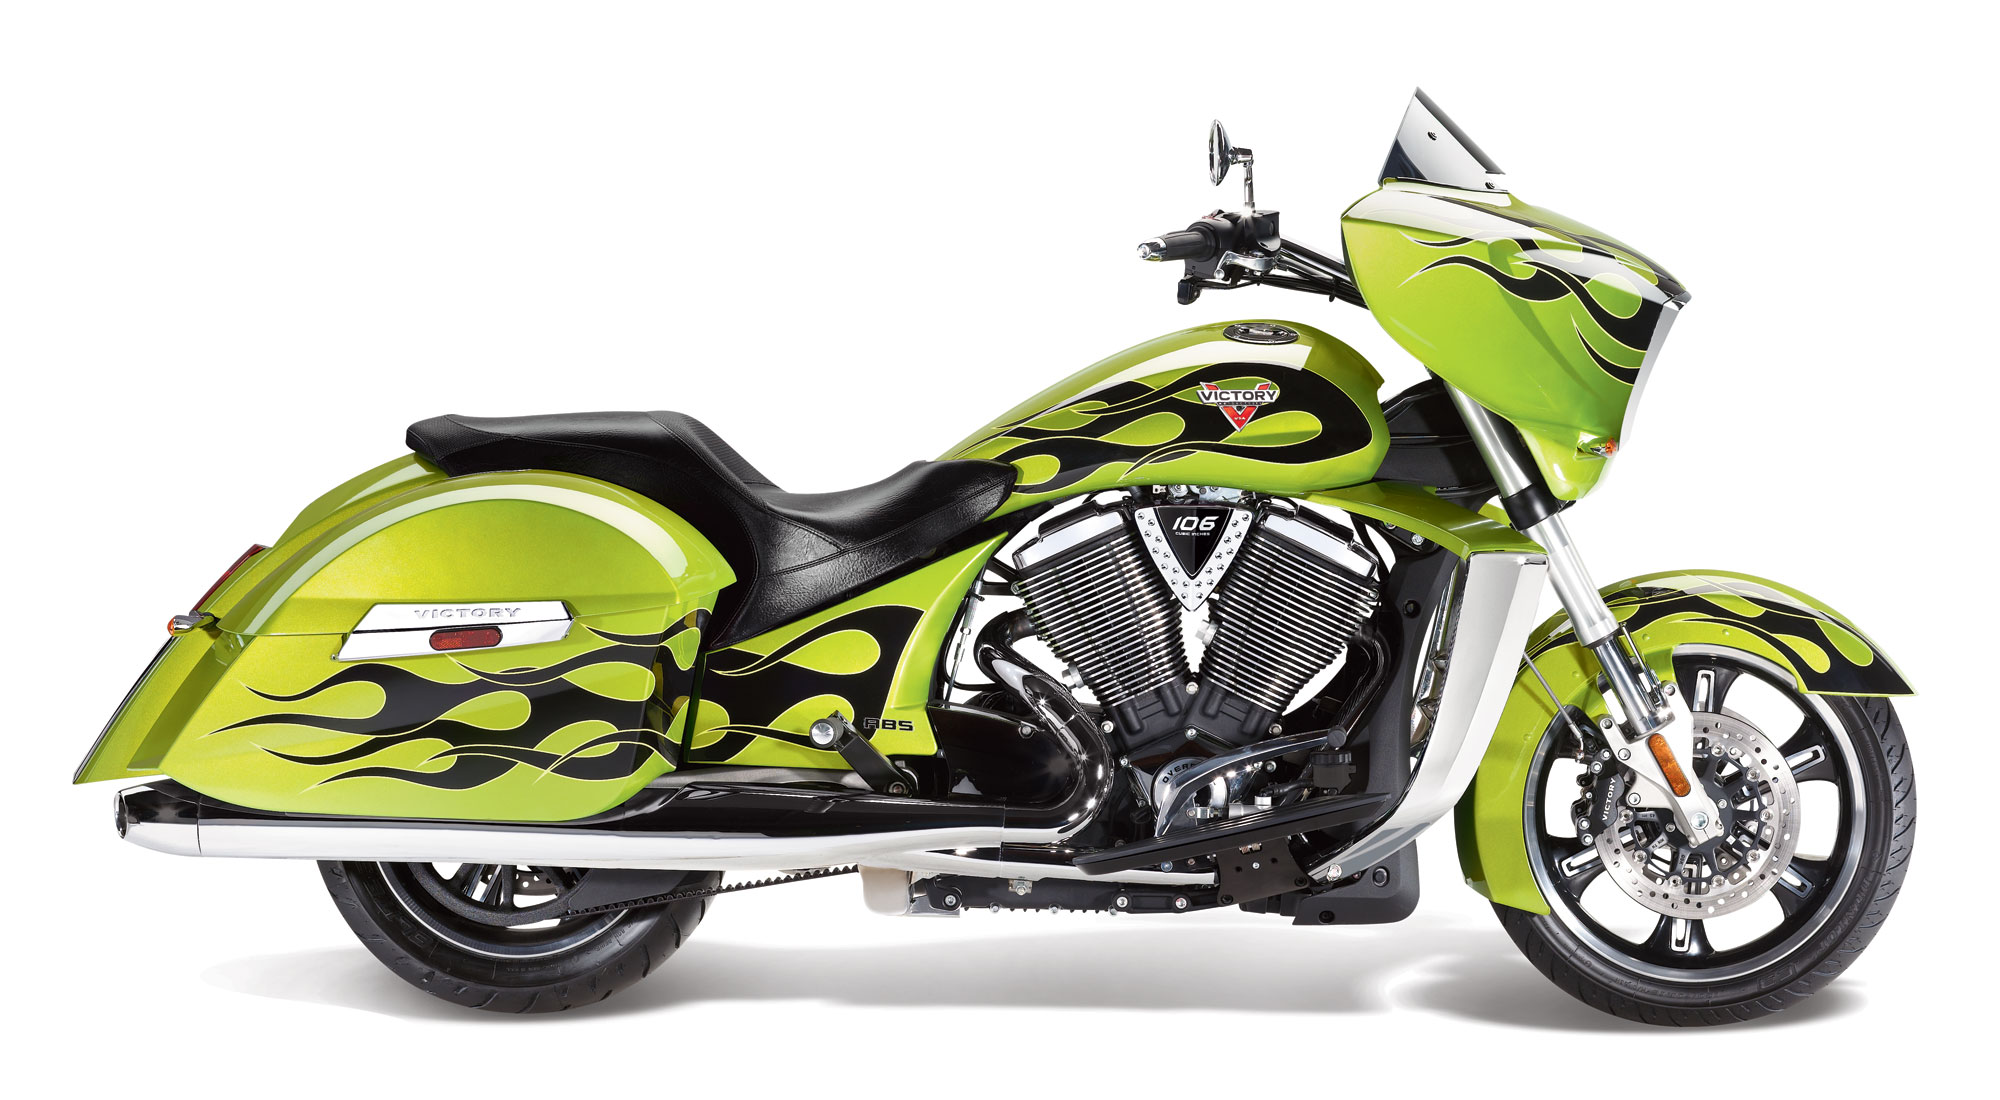 2013 Victory Cross Country Review